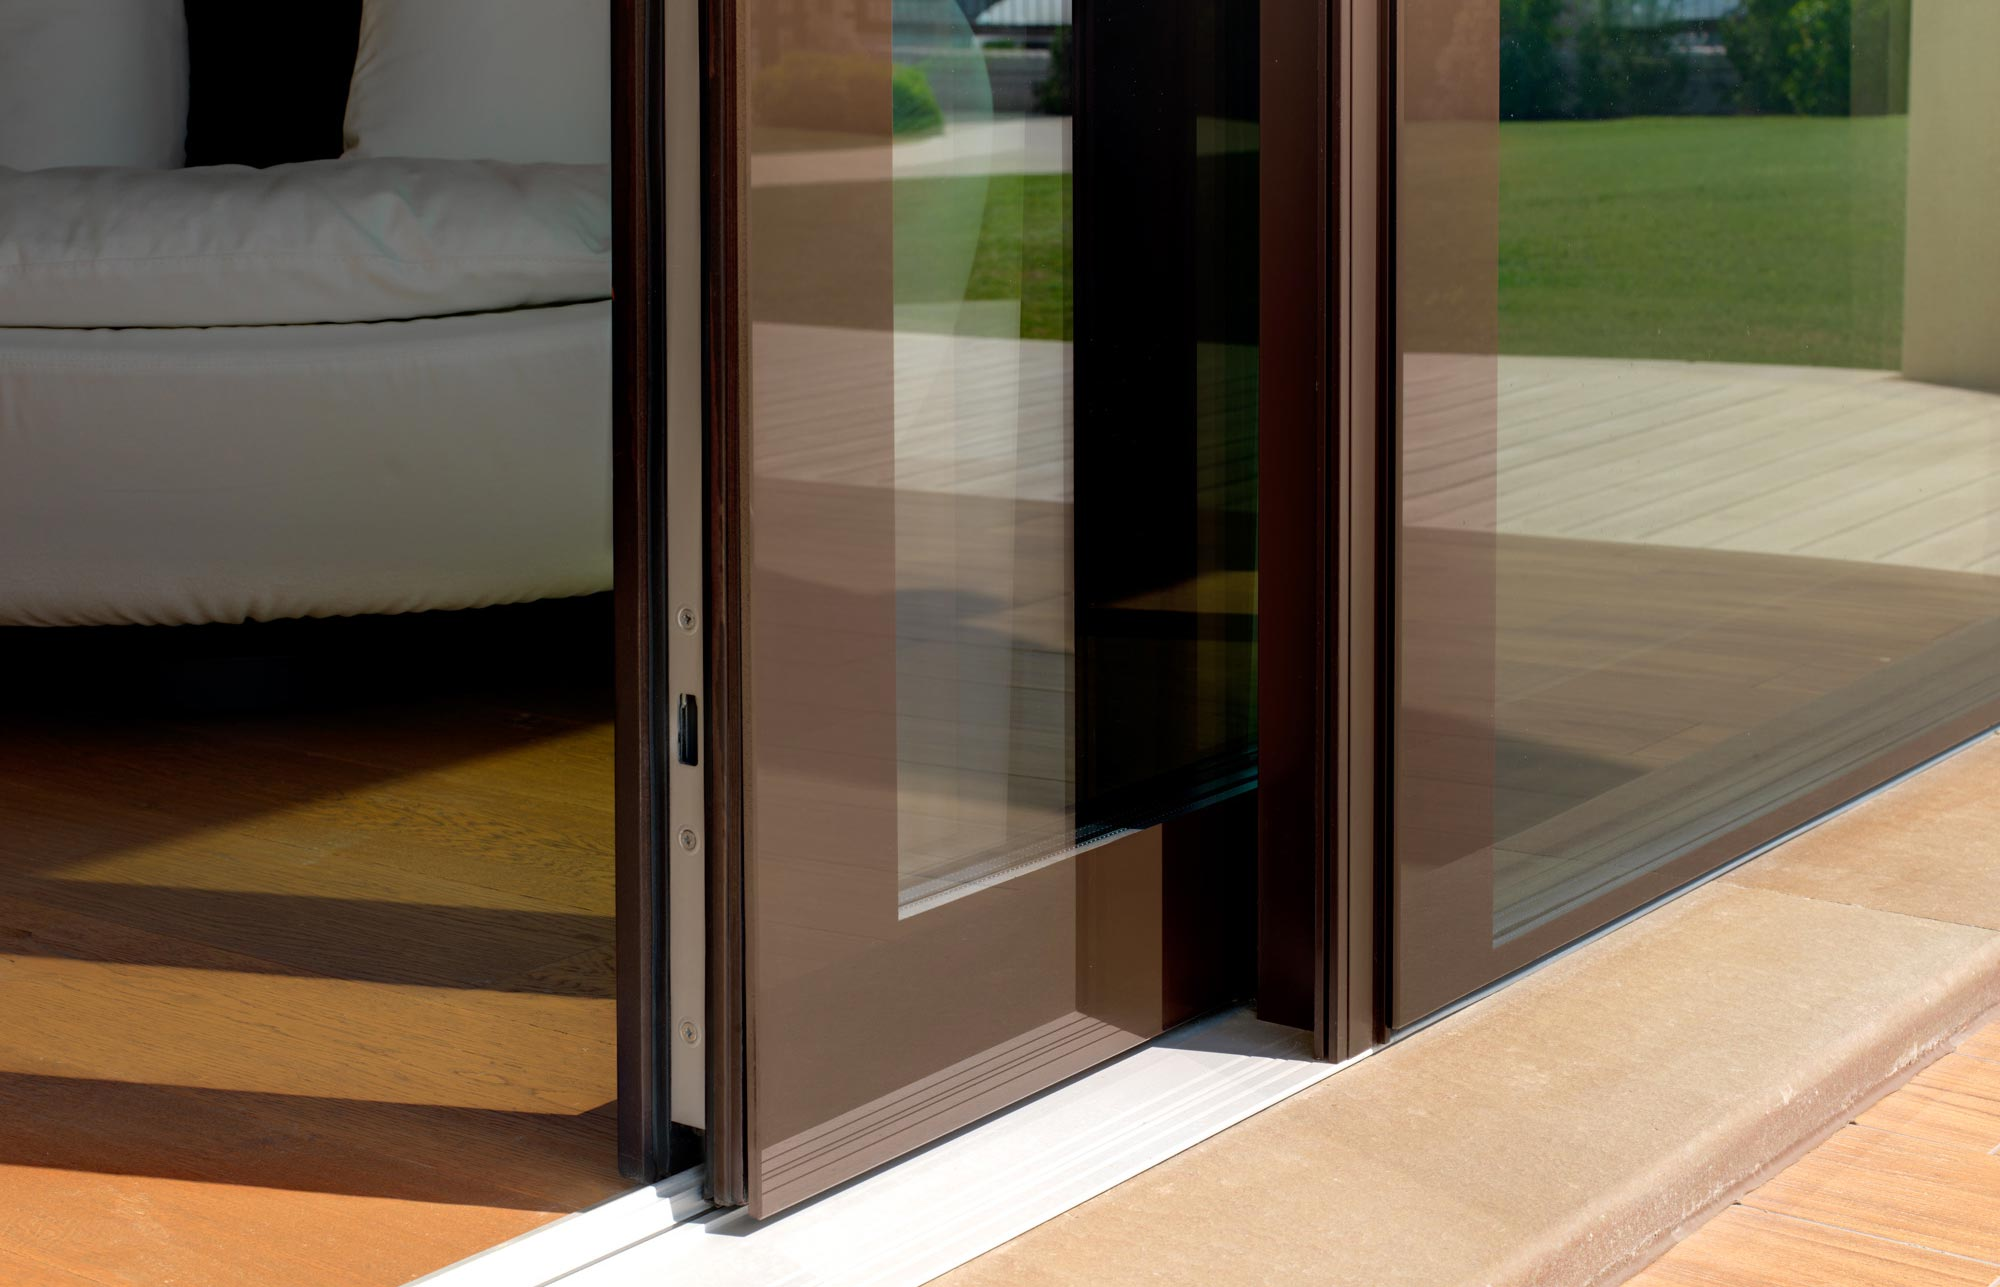 External view of a sliding door with Vitrum Double system